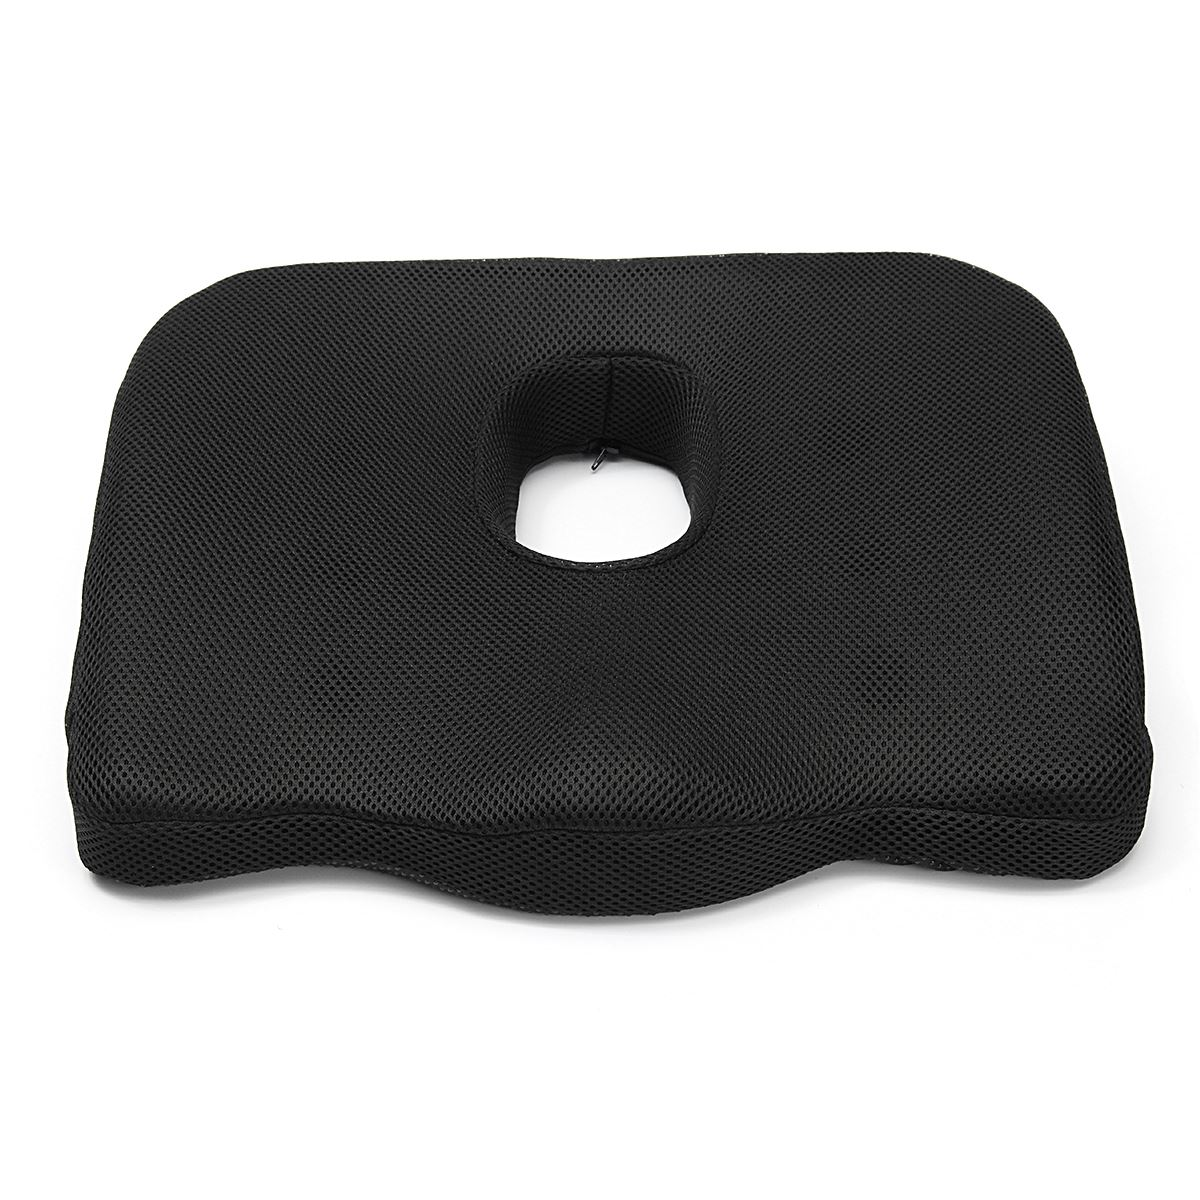 coccyx pillow memory foam seat cushion orthopedic design to relieve back sciatica and tailbone pain slip